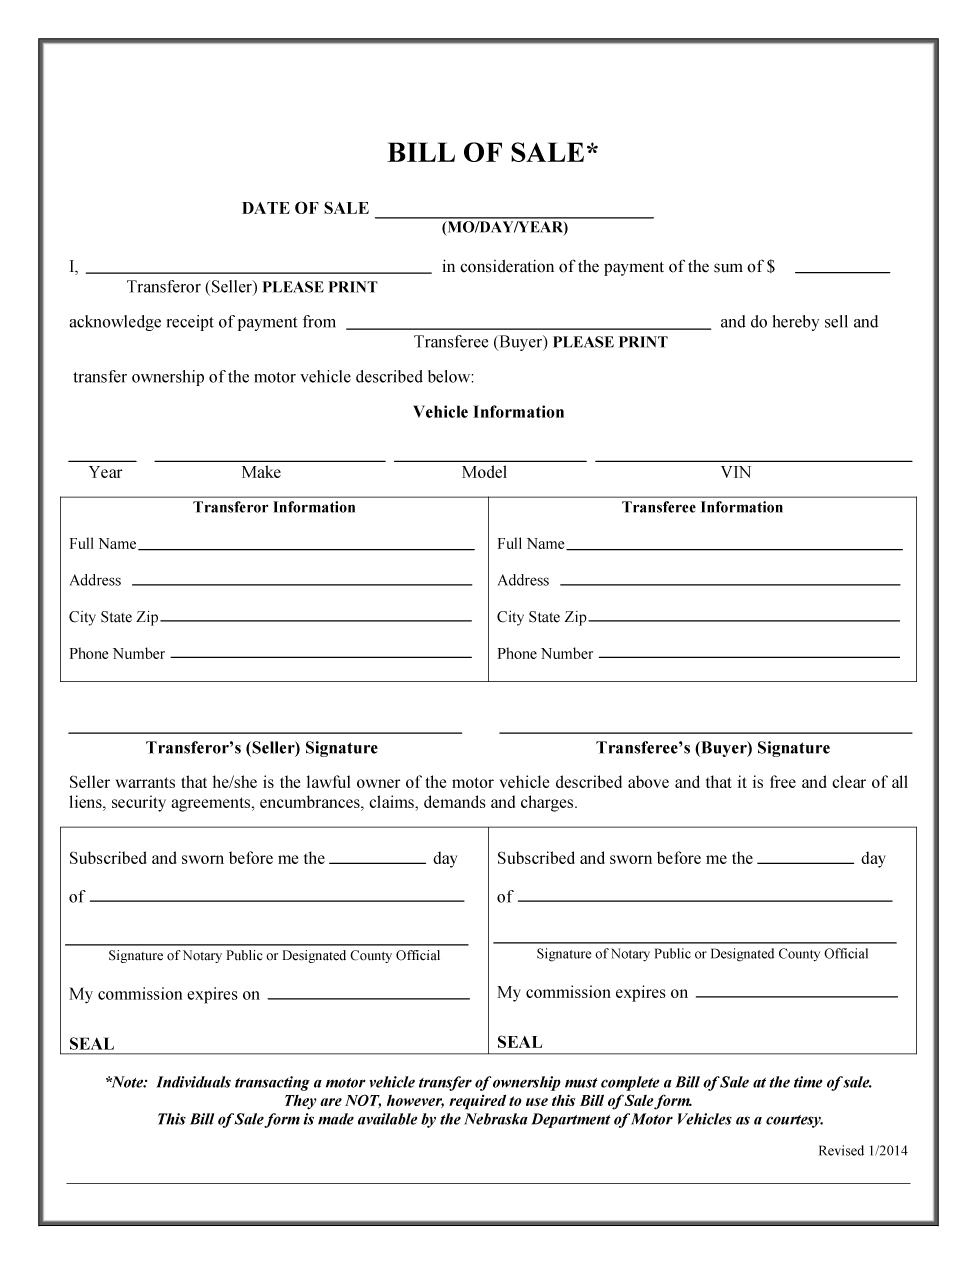 bill-of-sale-template-35